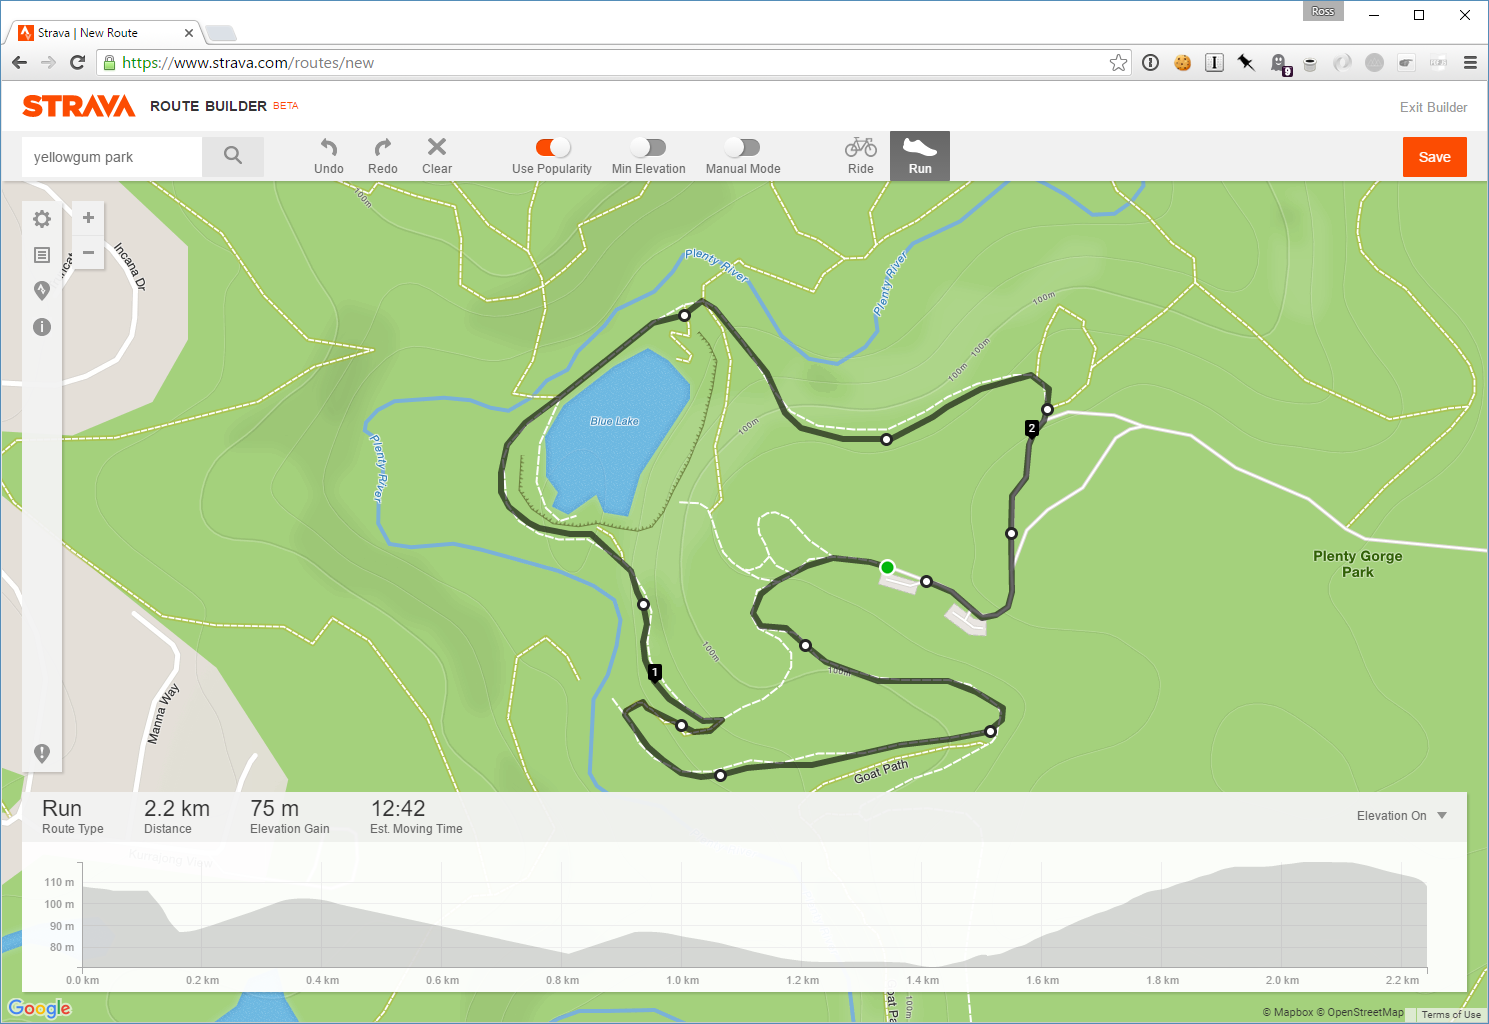 Using Strava to plan your trail run, and hopefully not get too lost